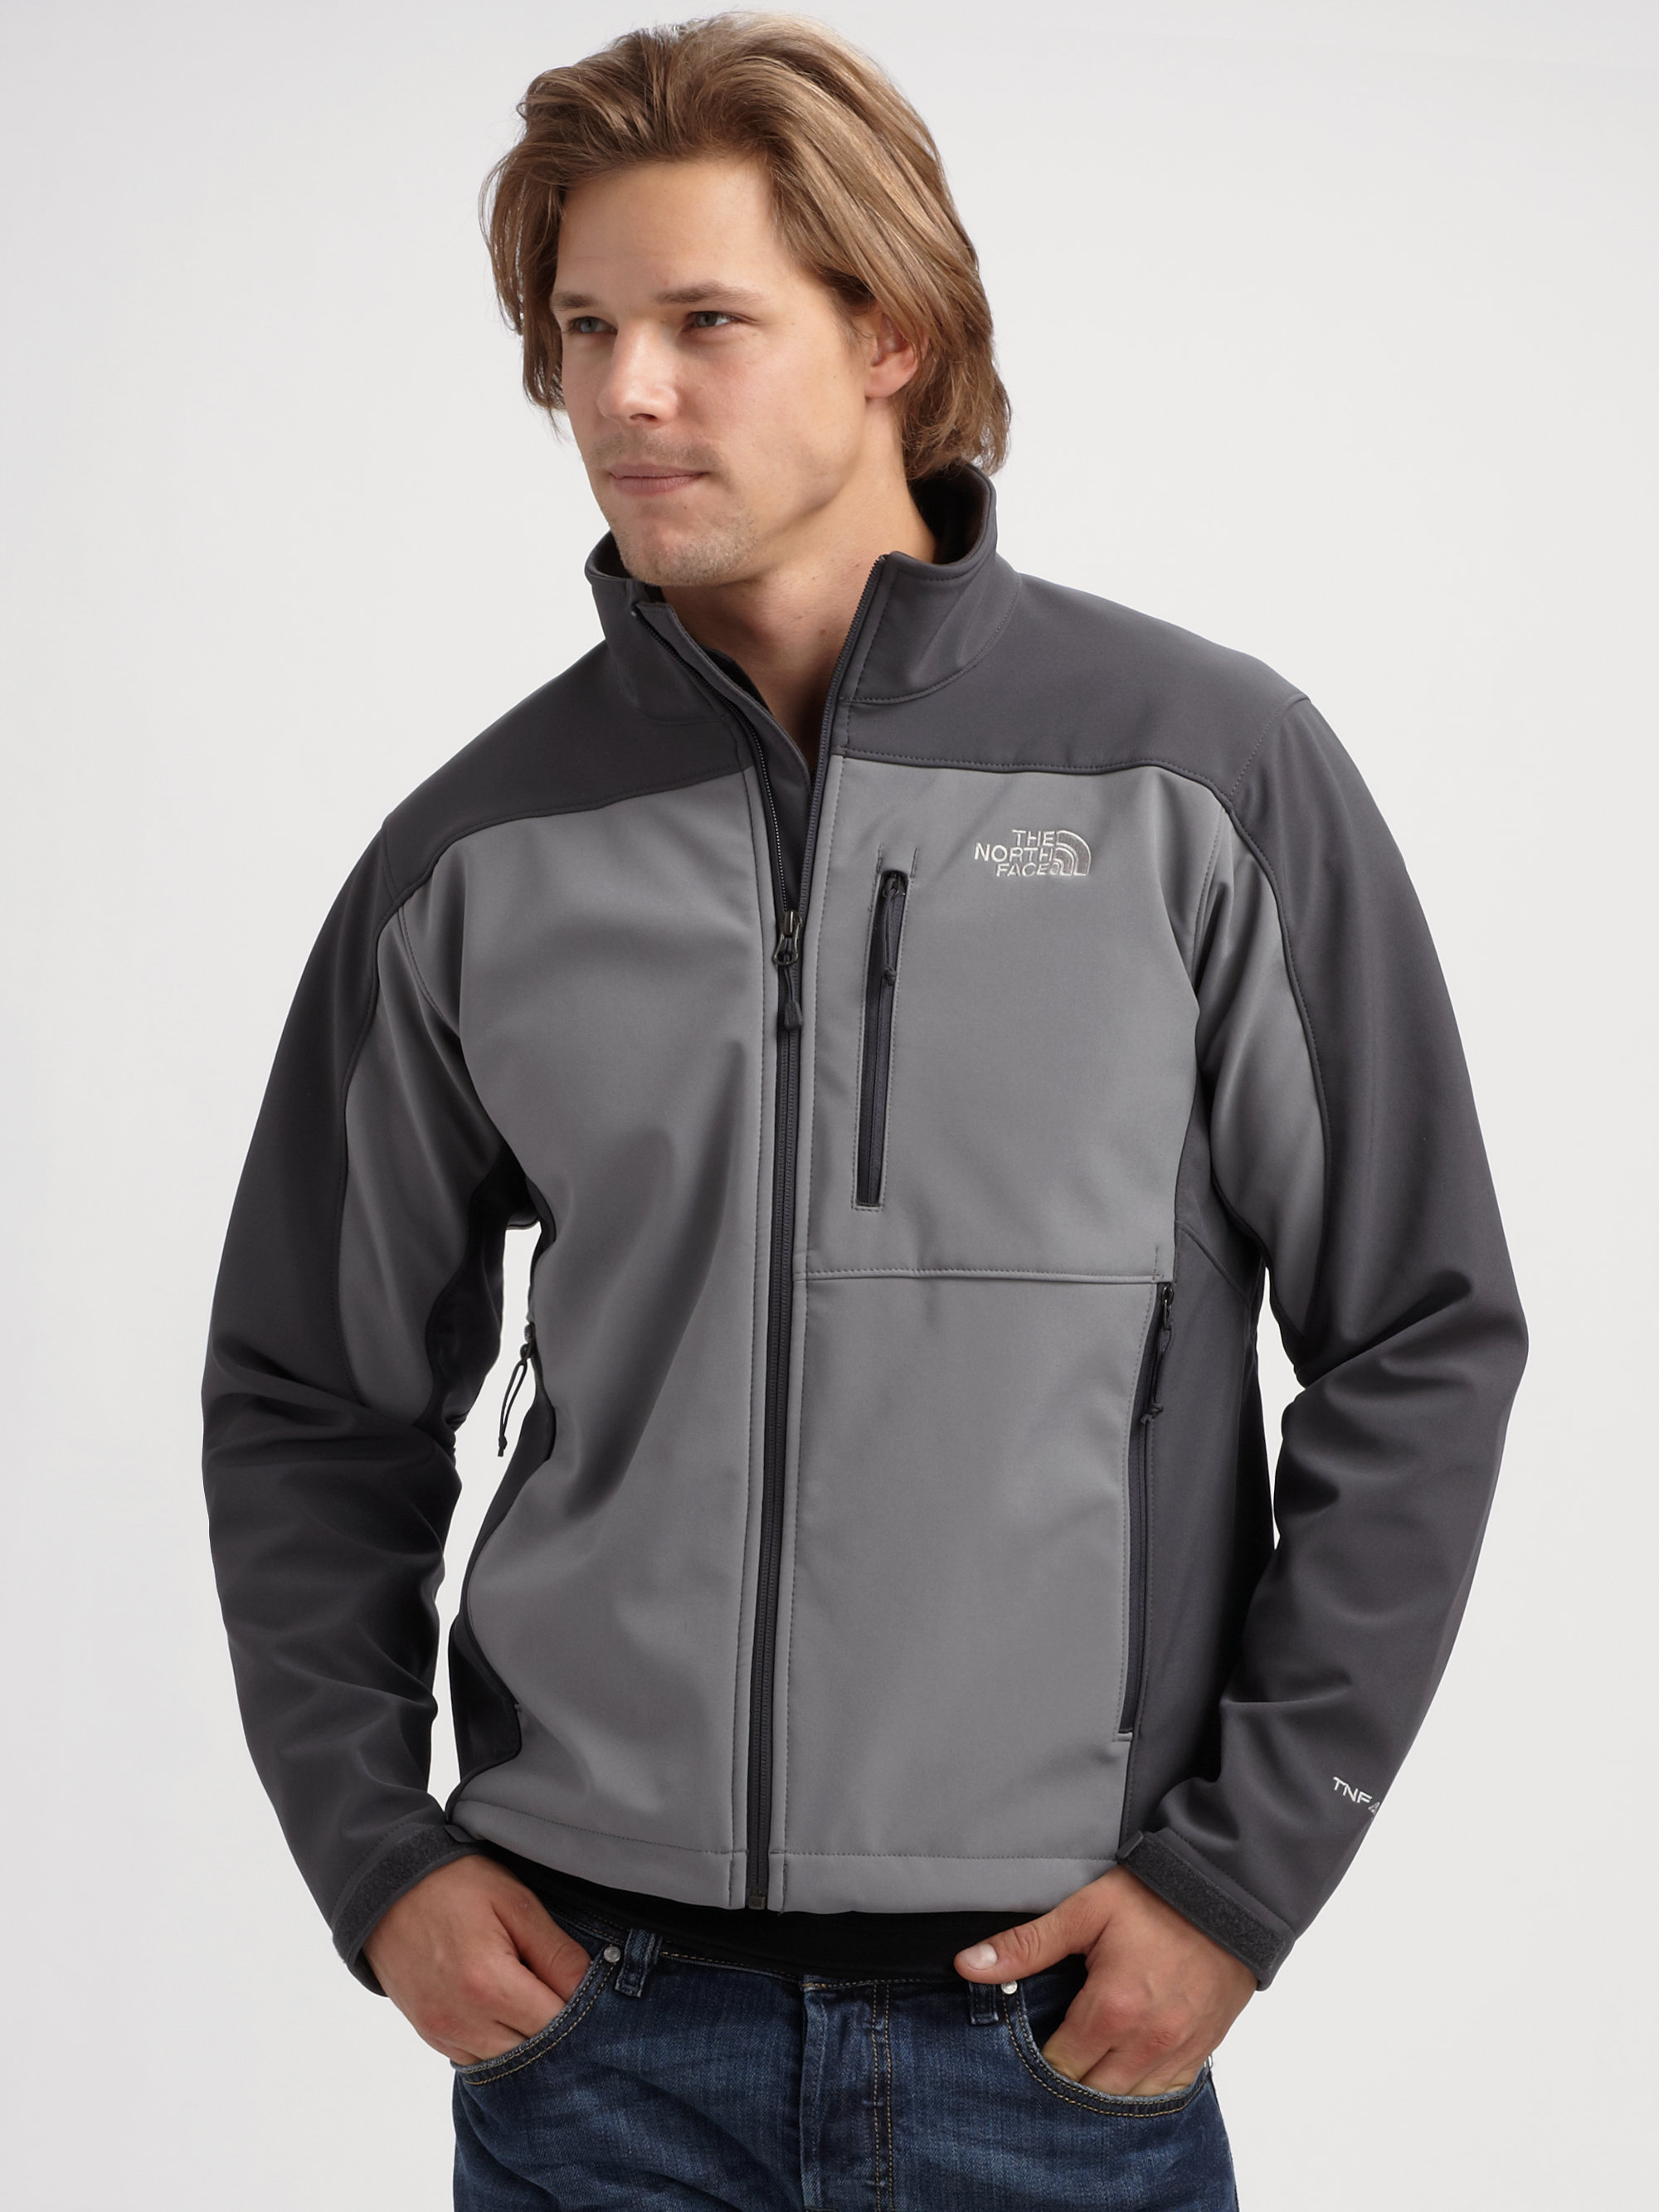 1ea74cd61c93 ... closeout lyst the north face apex bionic jacket in gray for men 12c74  a0f95 ...